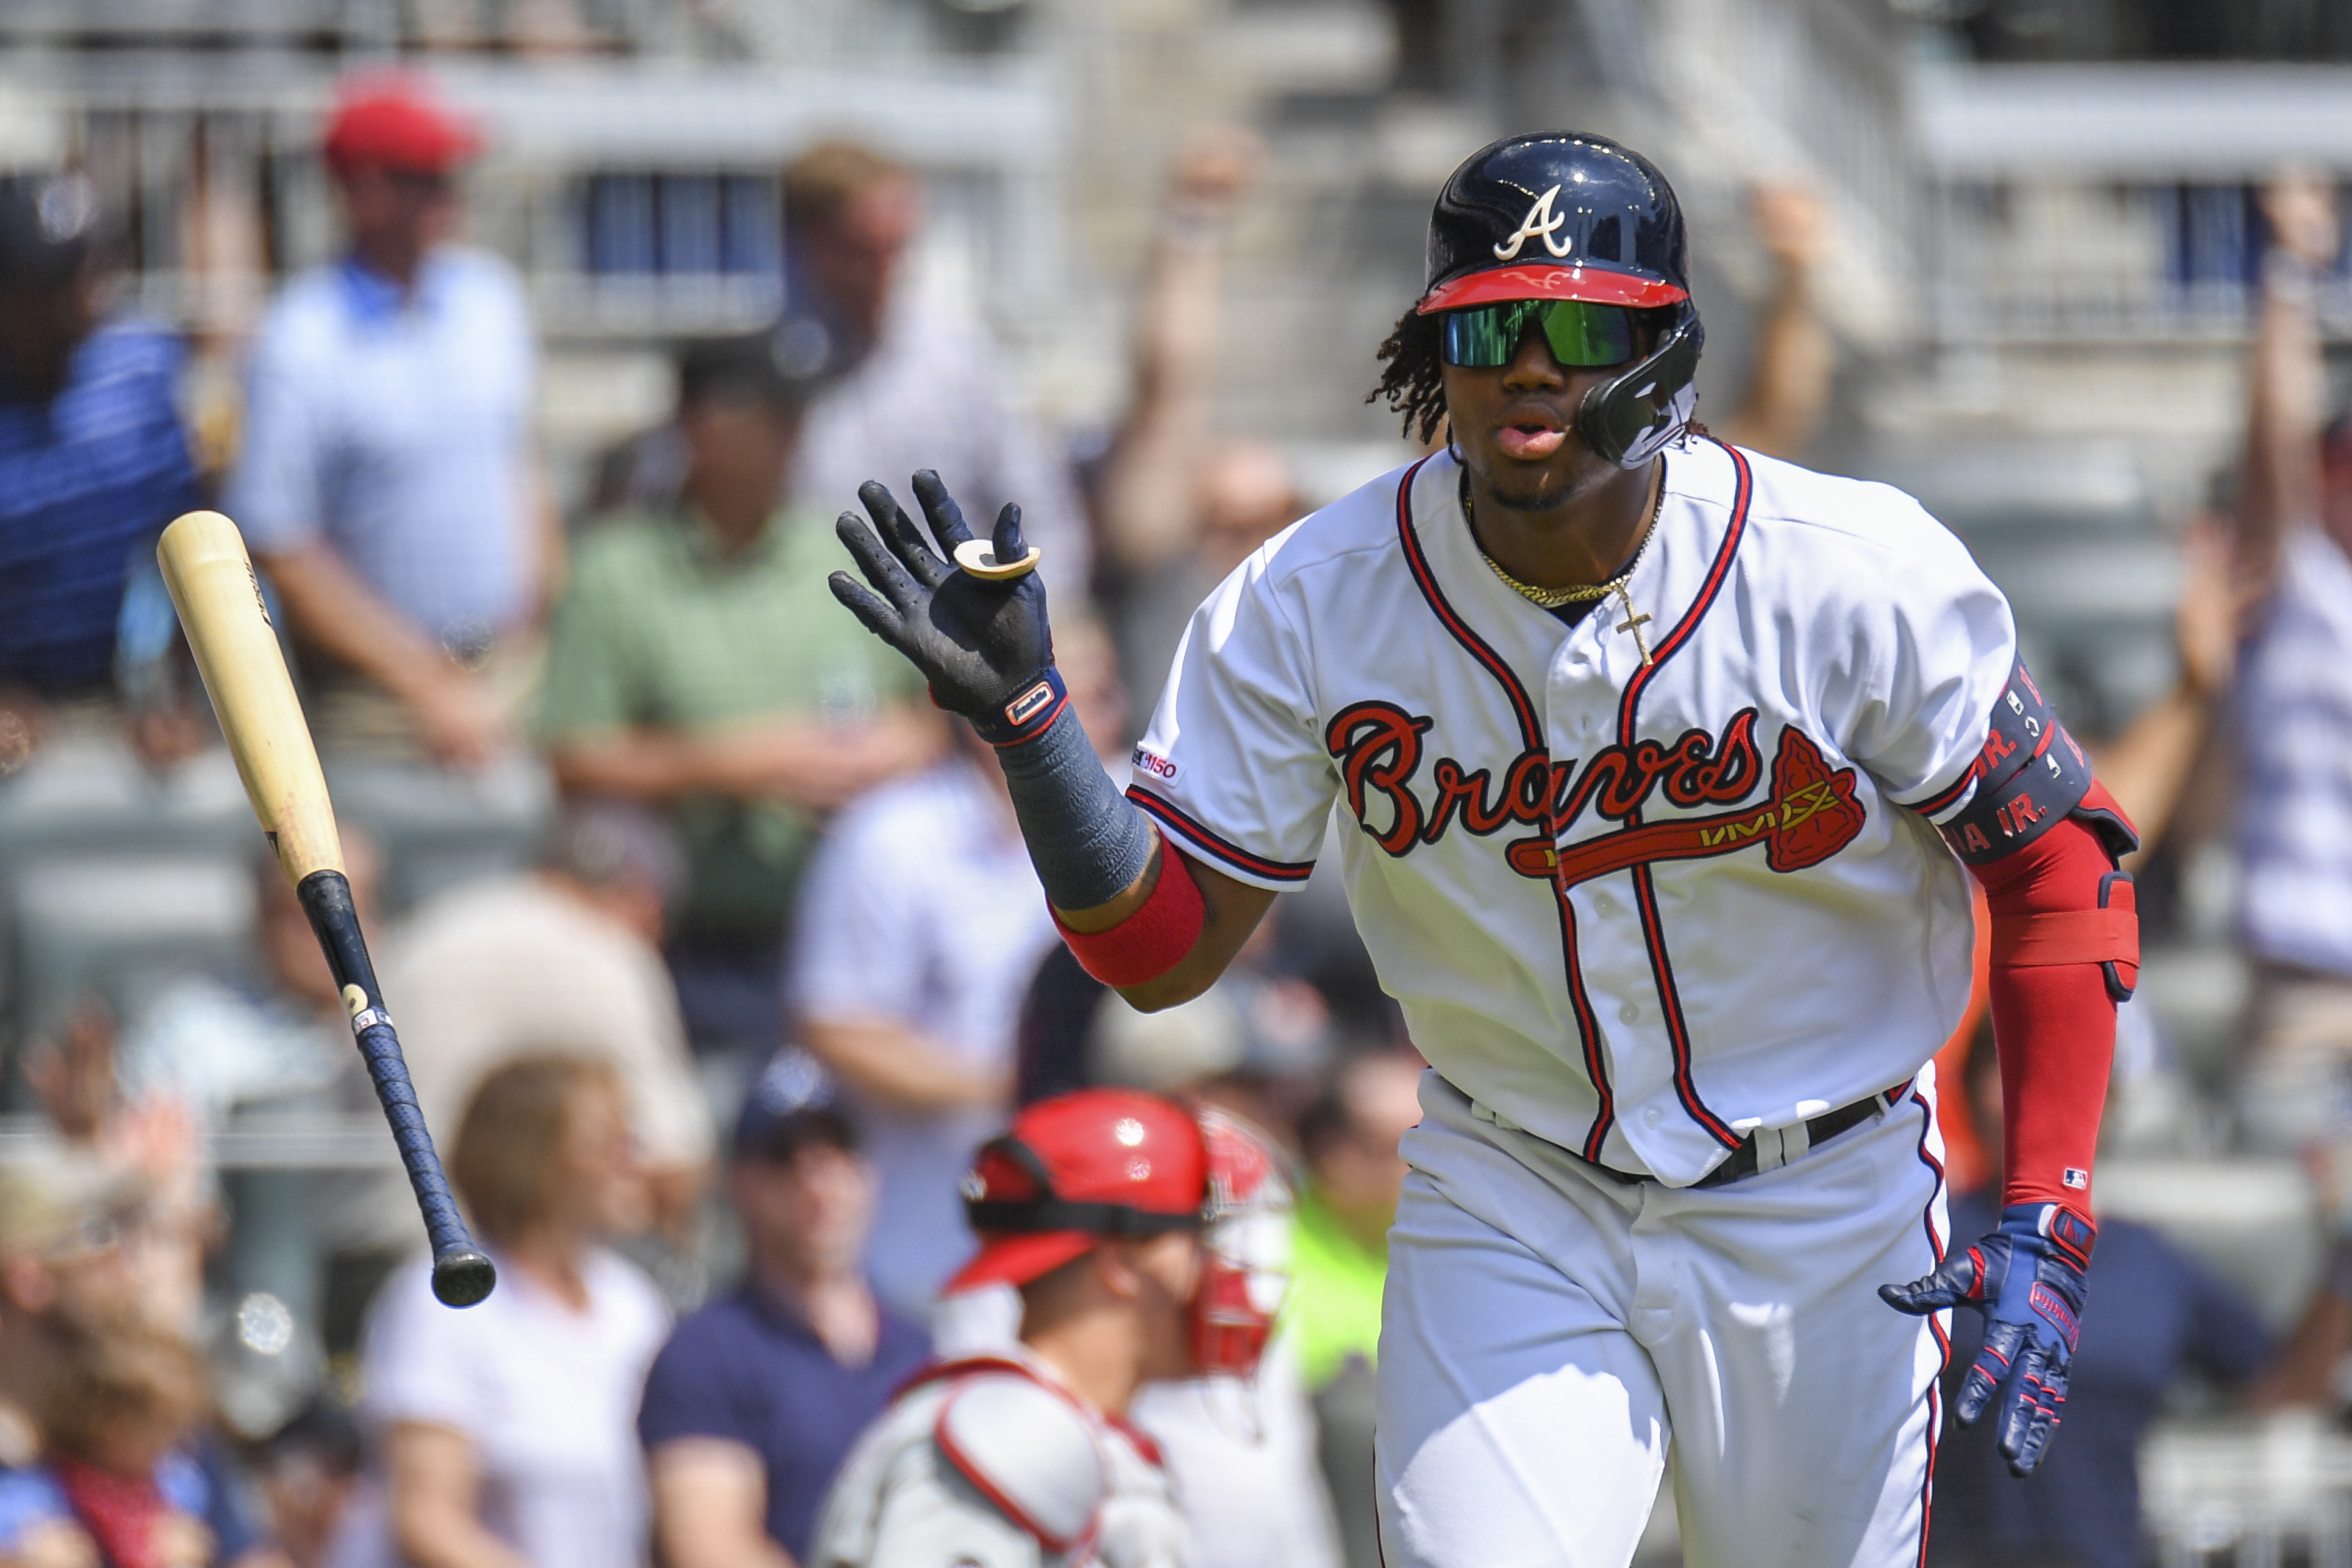 Prospectus Notebook: Acuña Dazzles and Cleveland Makes History - Baseball Prospectus